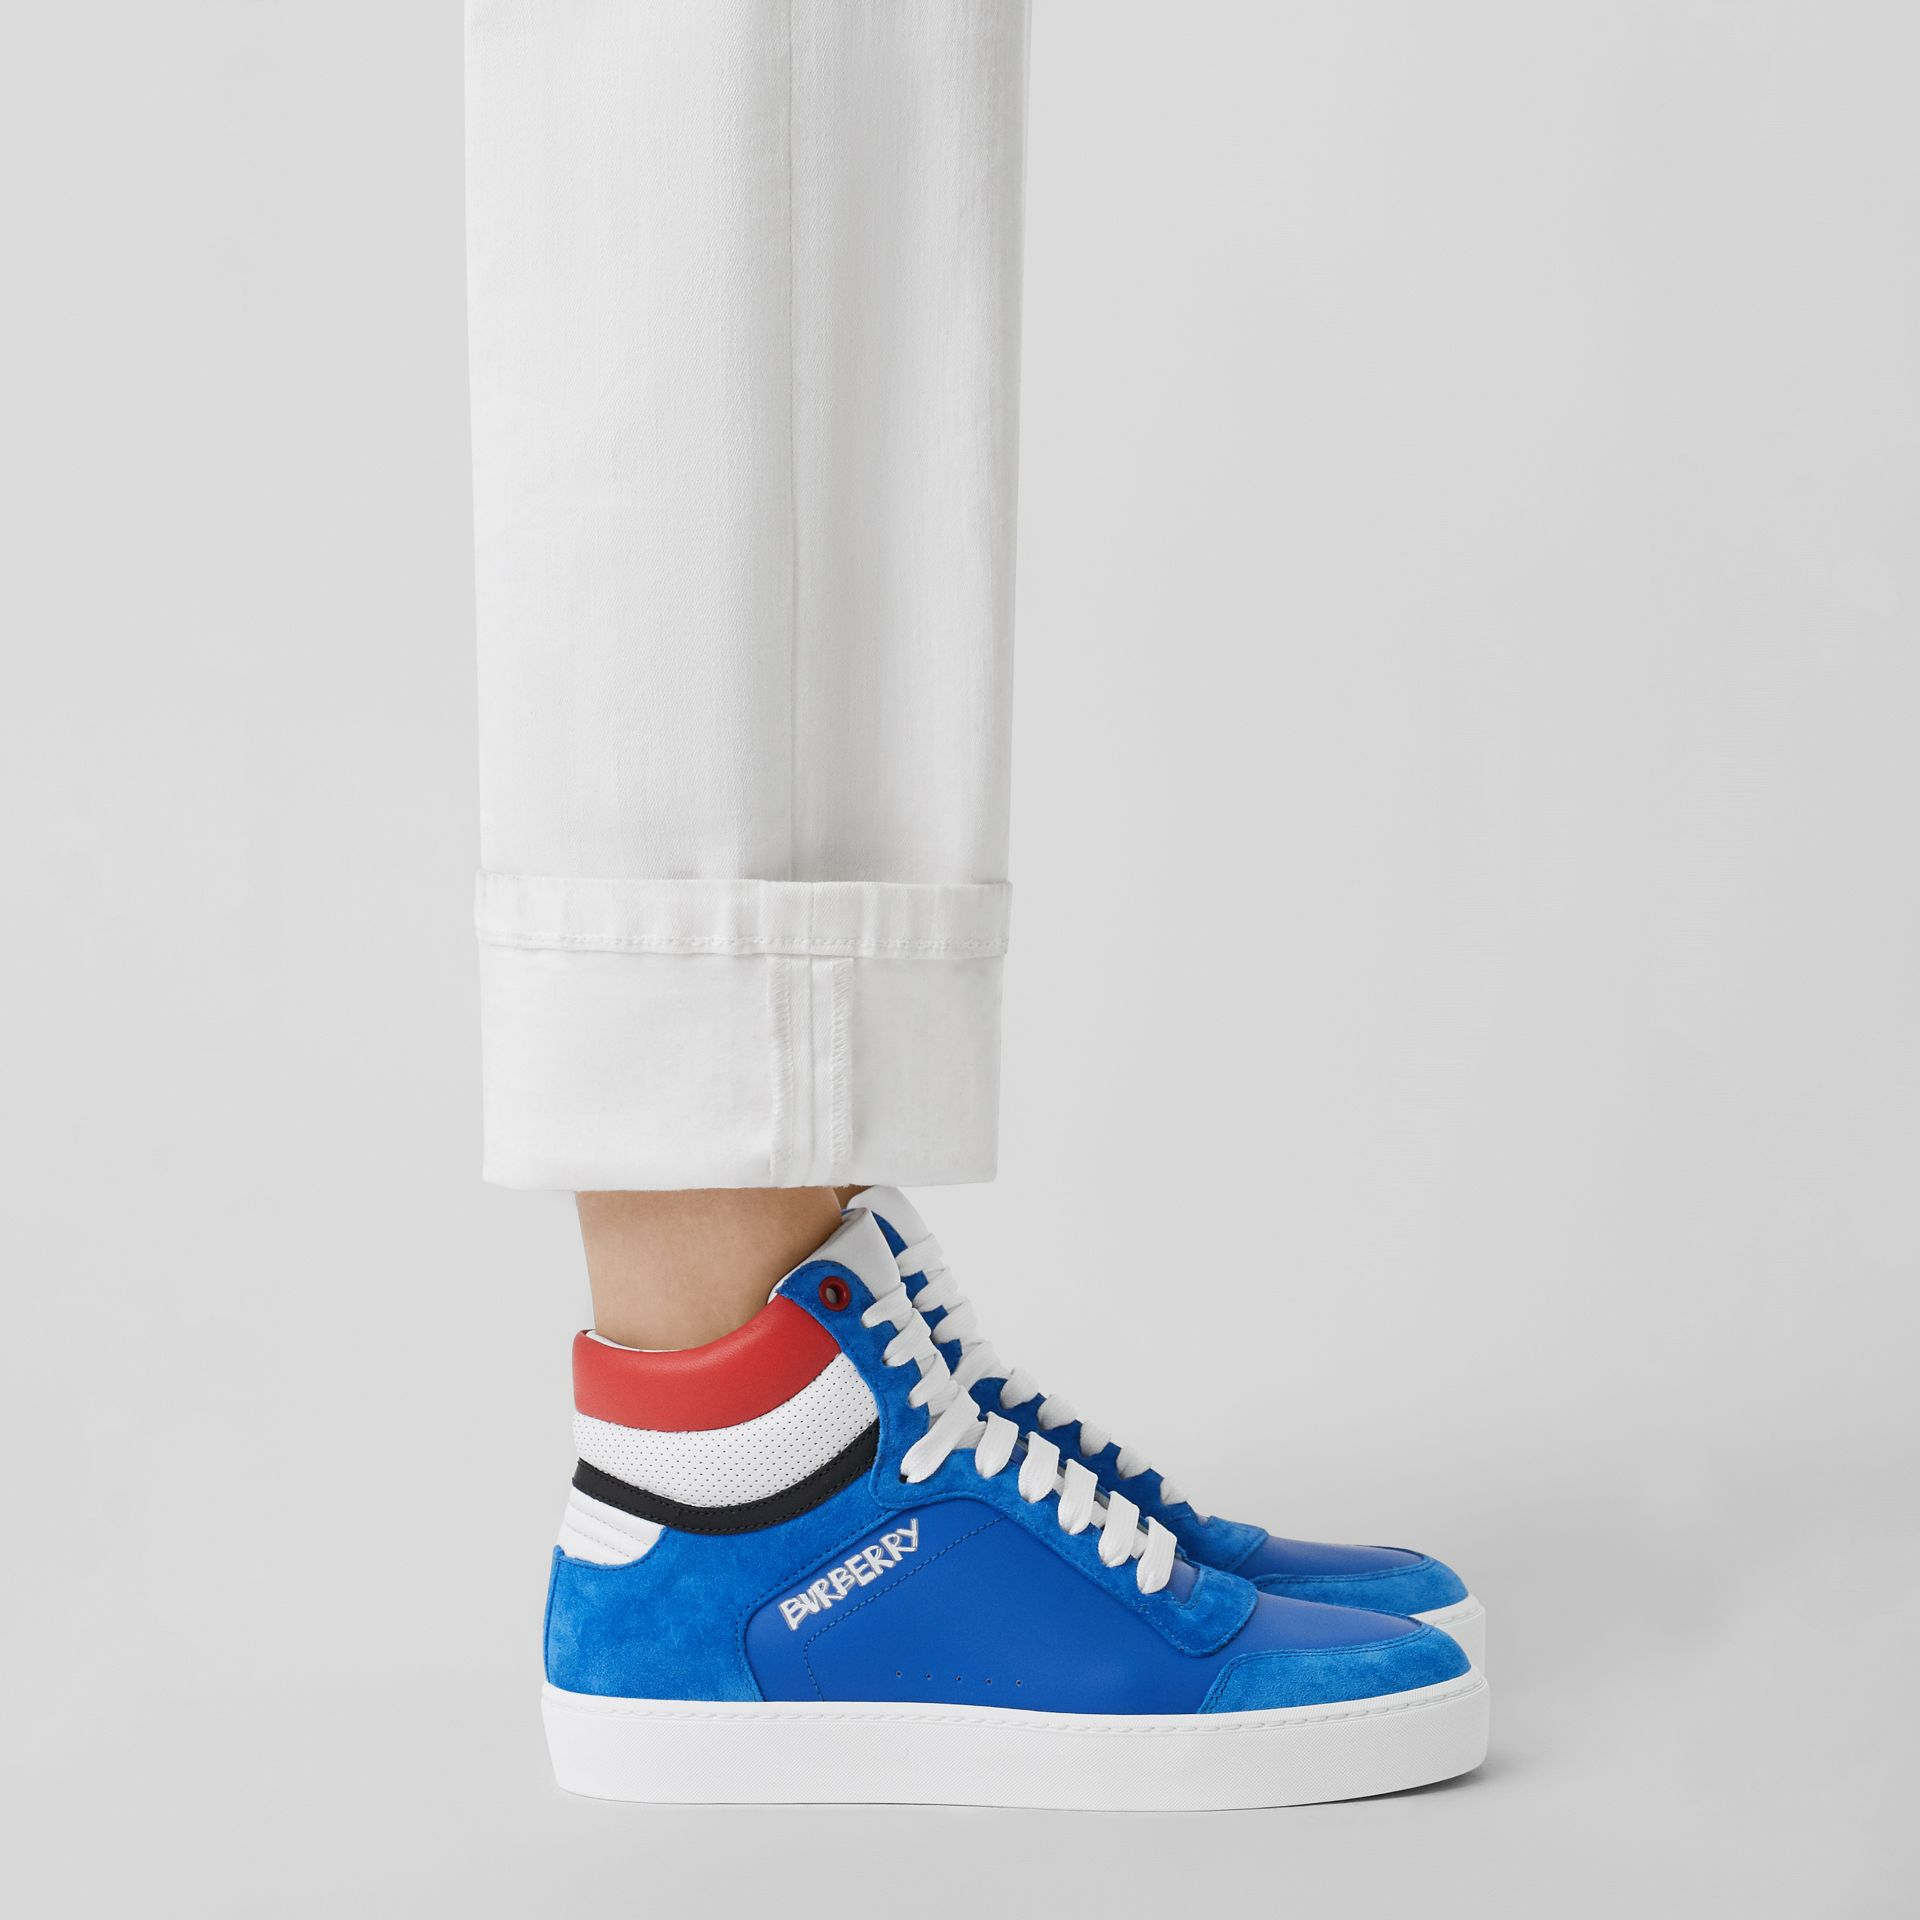 Leather and Suede High-top Sneakers in Bright Sky Blue - Women | Burberry Singapore - gallery image 2